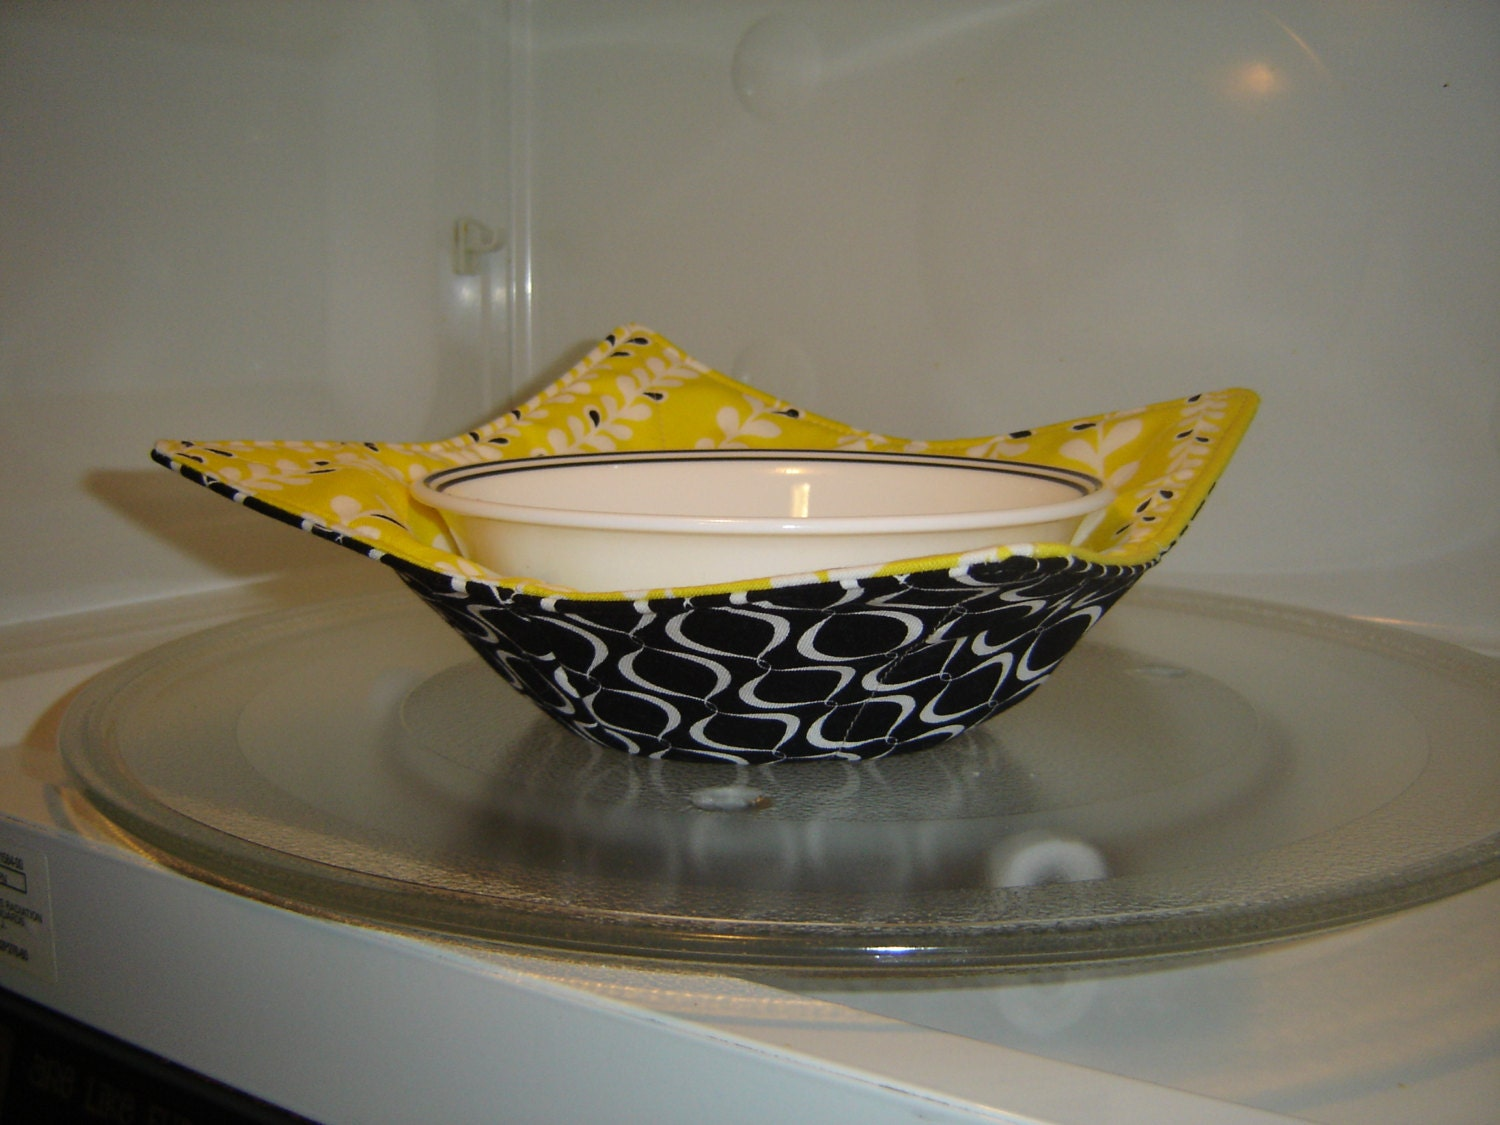 Reversible microwave bowl cozy potholder by suziesewingcreations